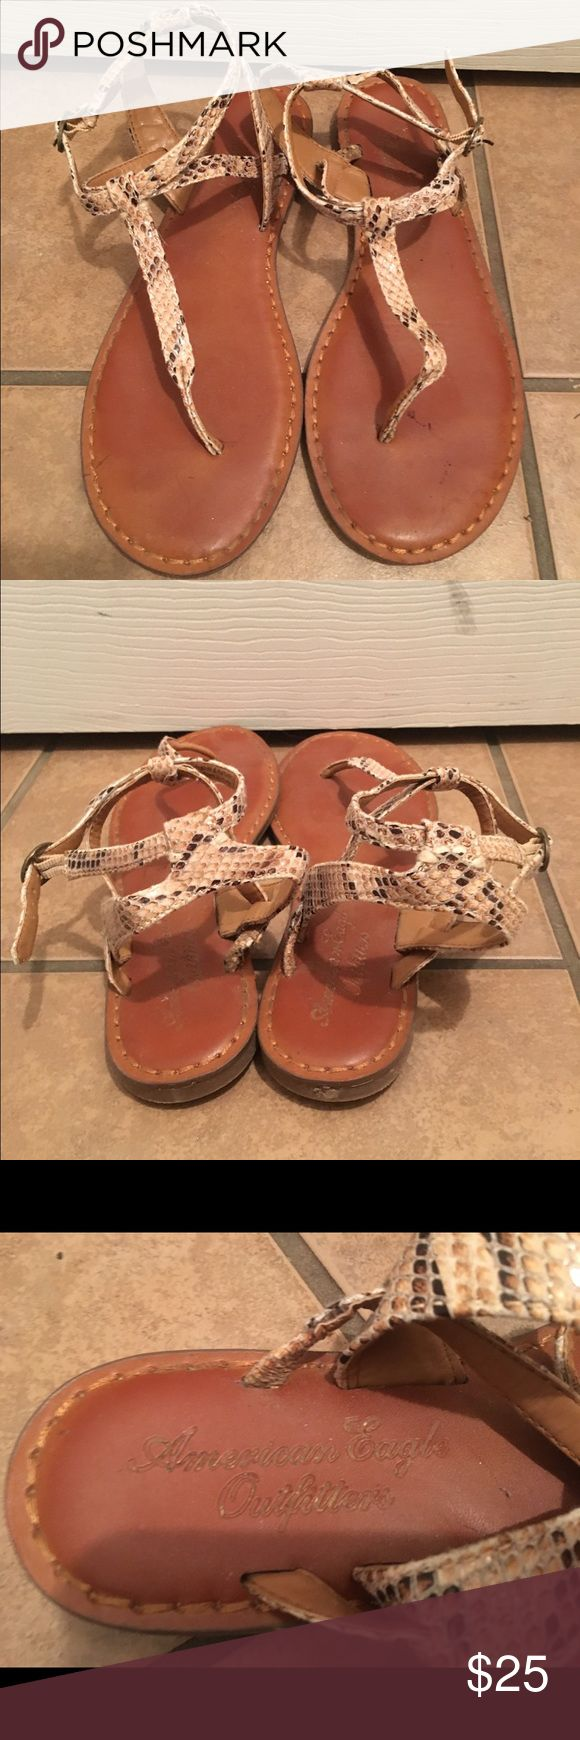 ⚡️SALE⚡️American Eagle Sandals Snakeskin, ankle strap American Eagle Outfitters Shoes Sandals